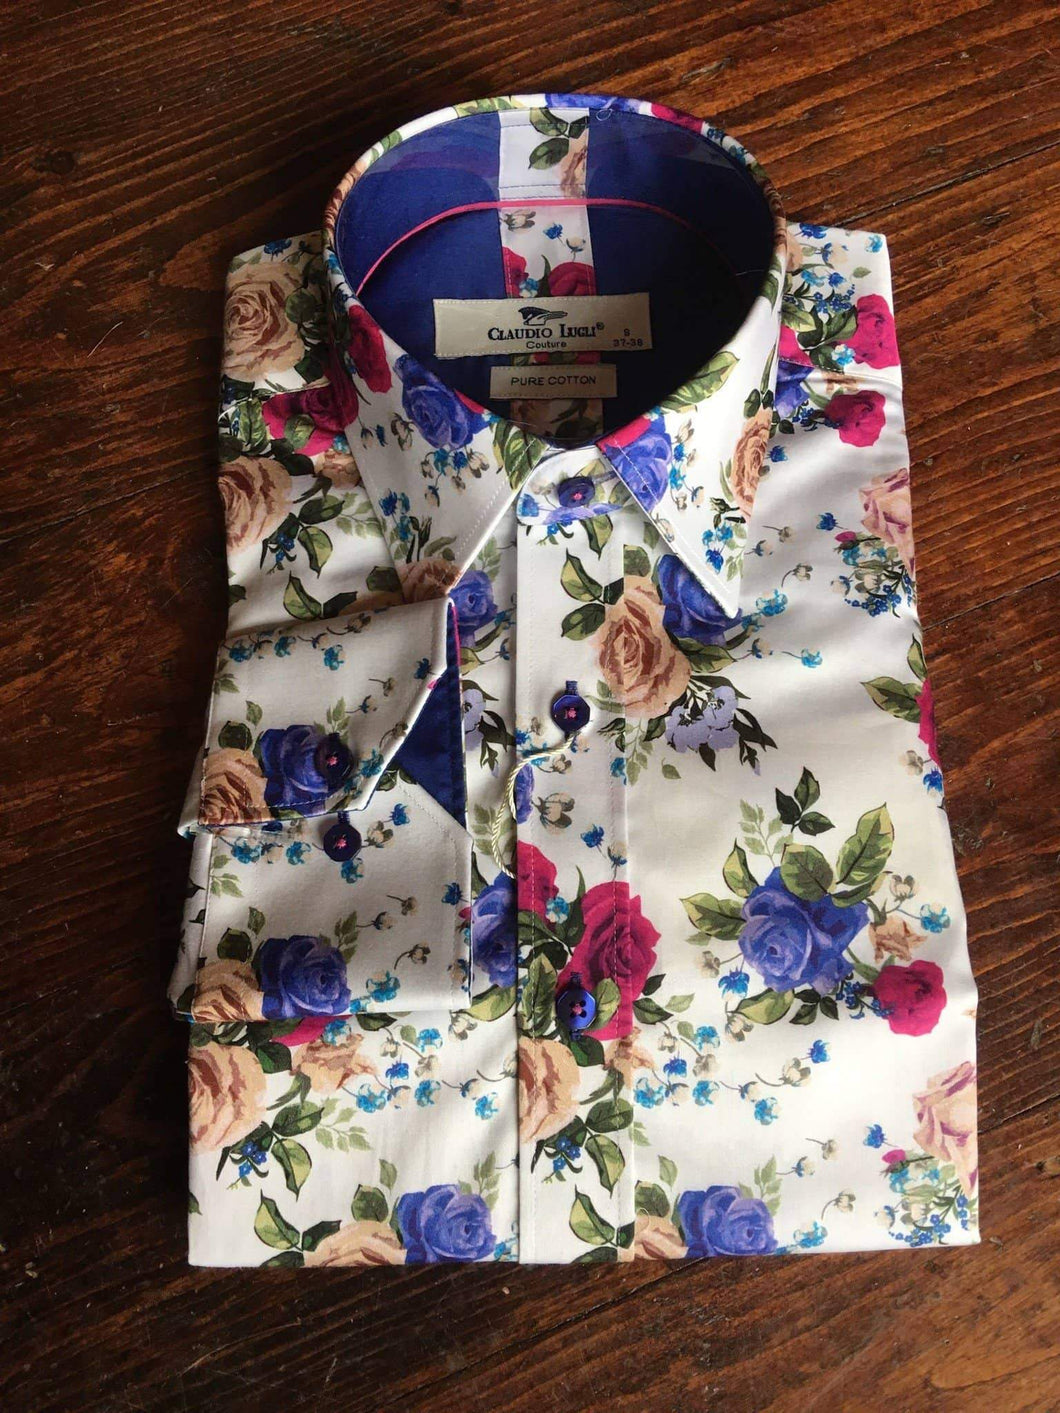 Claudio Lugli White Shirt With Rose Print S